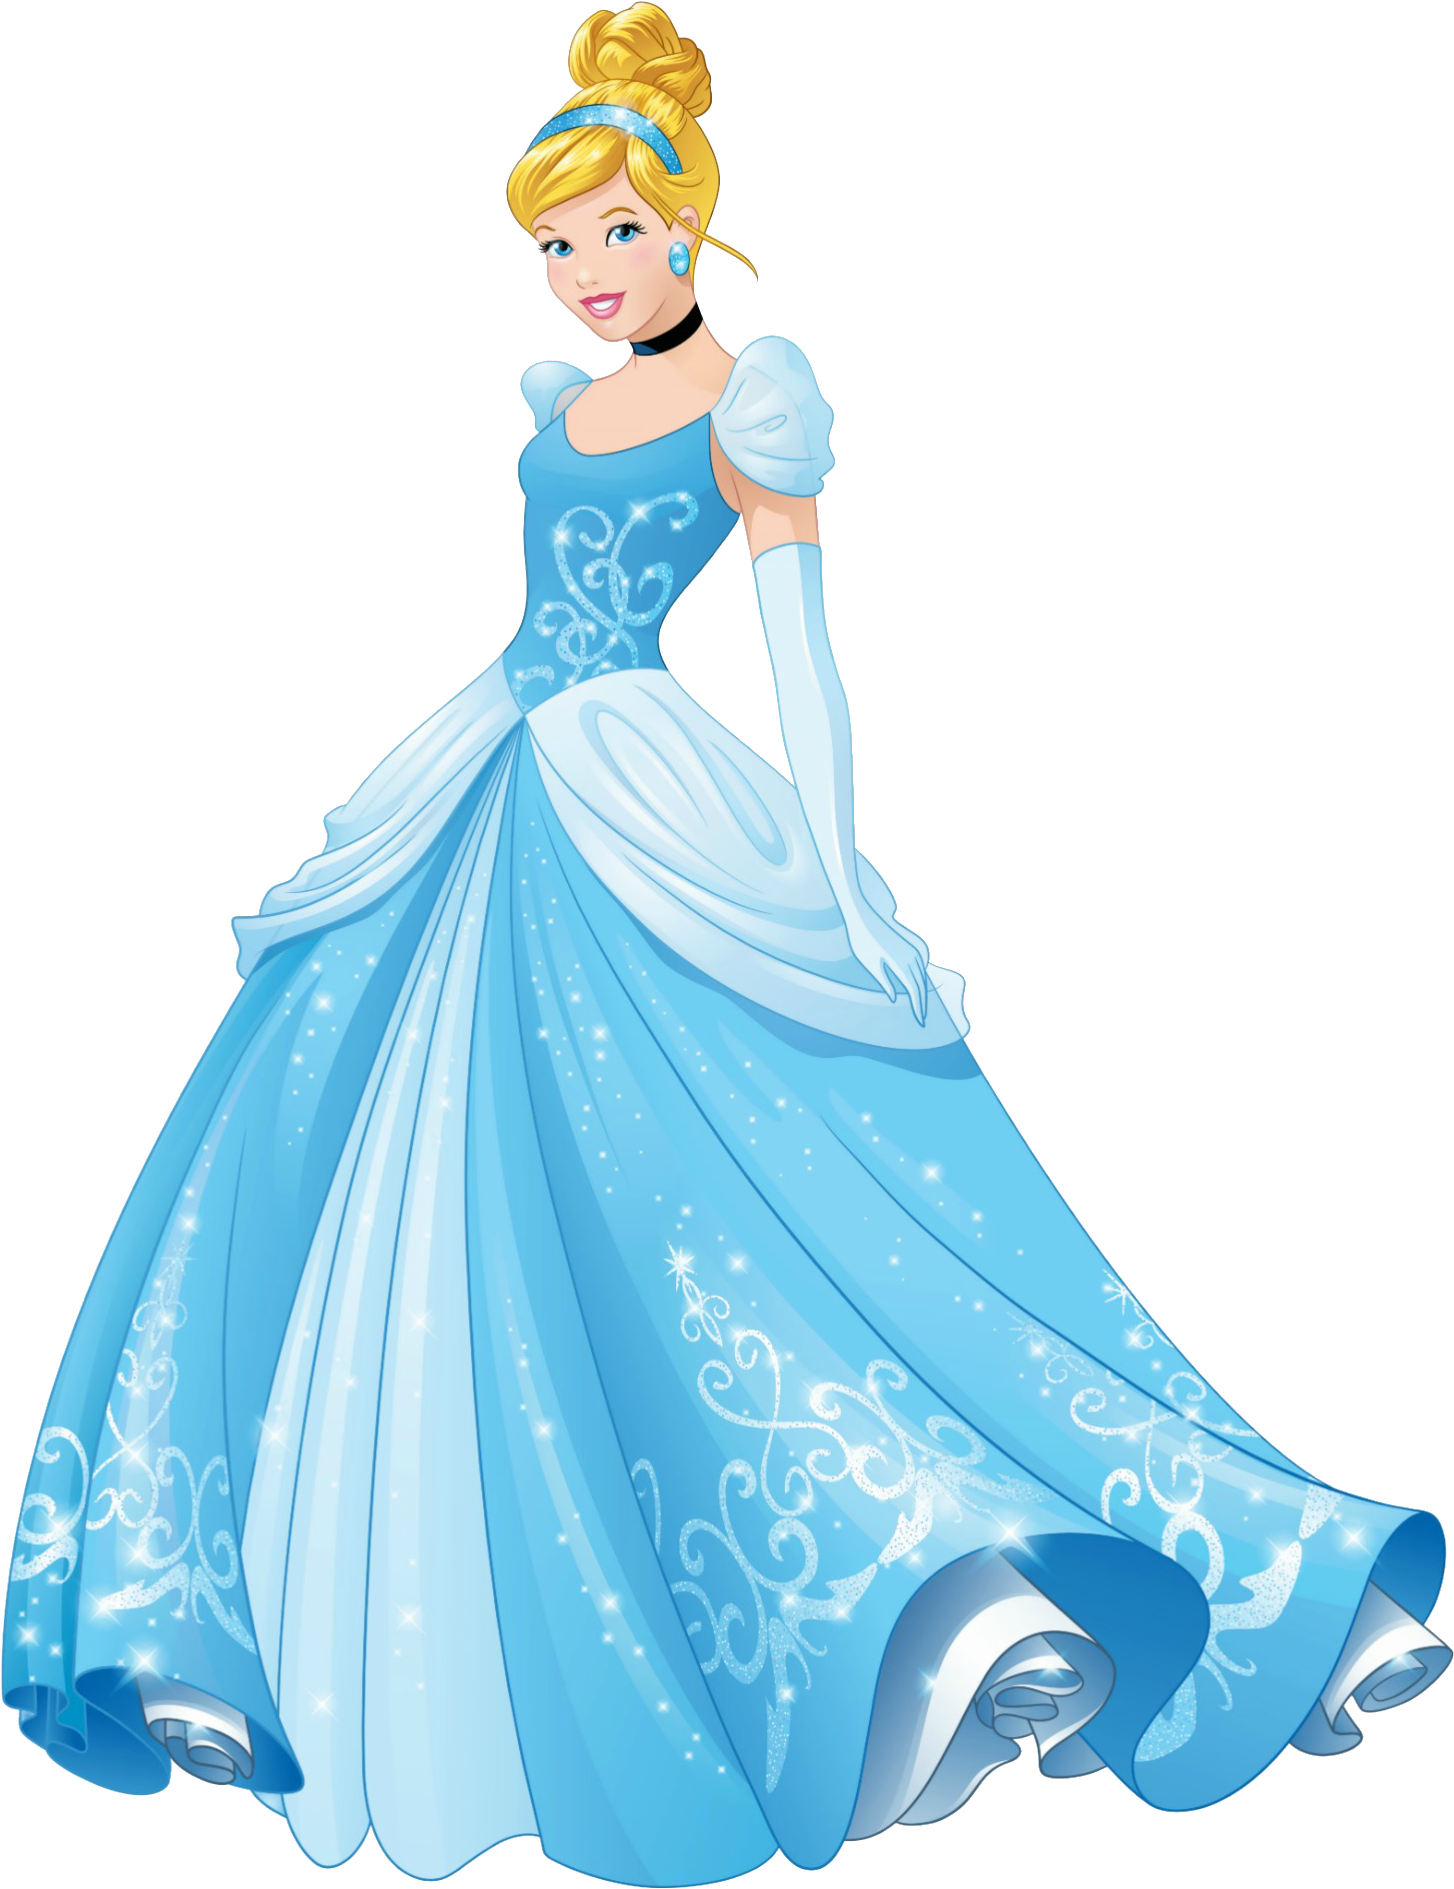 Category:Disney Princesses | Disney Wiki | Fandom powered ...